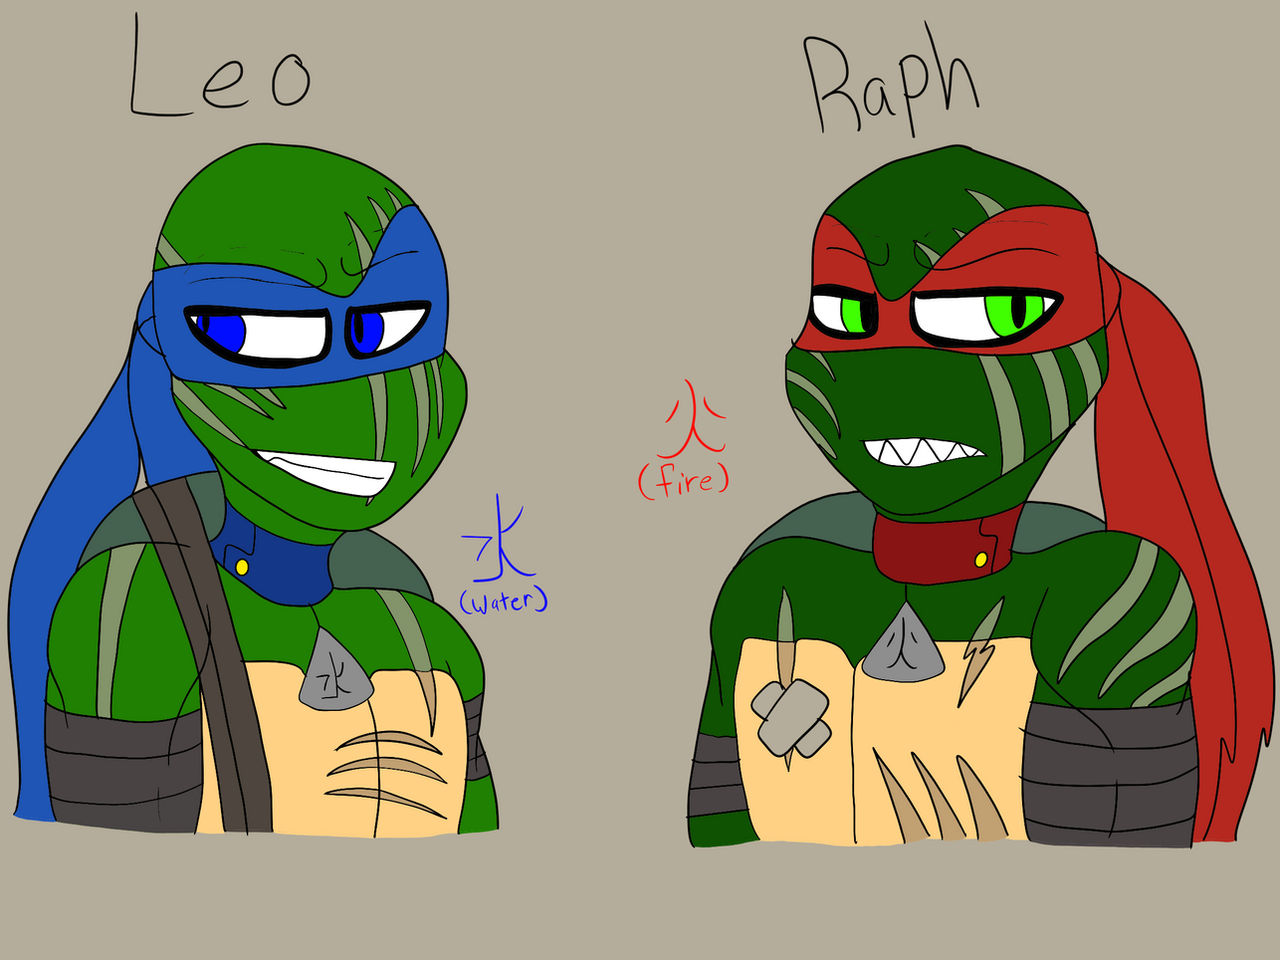 Tmnt2012 Leo And Raph By Artisticmadidel On Deviantart